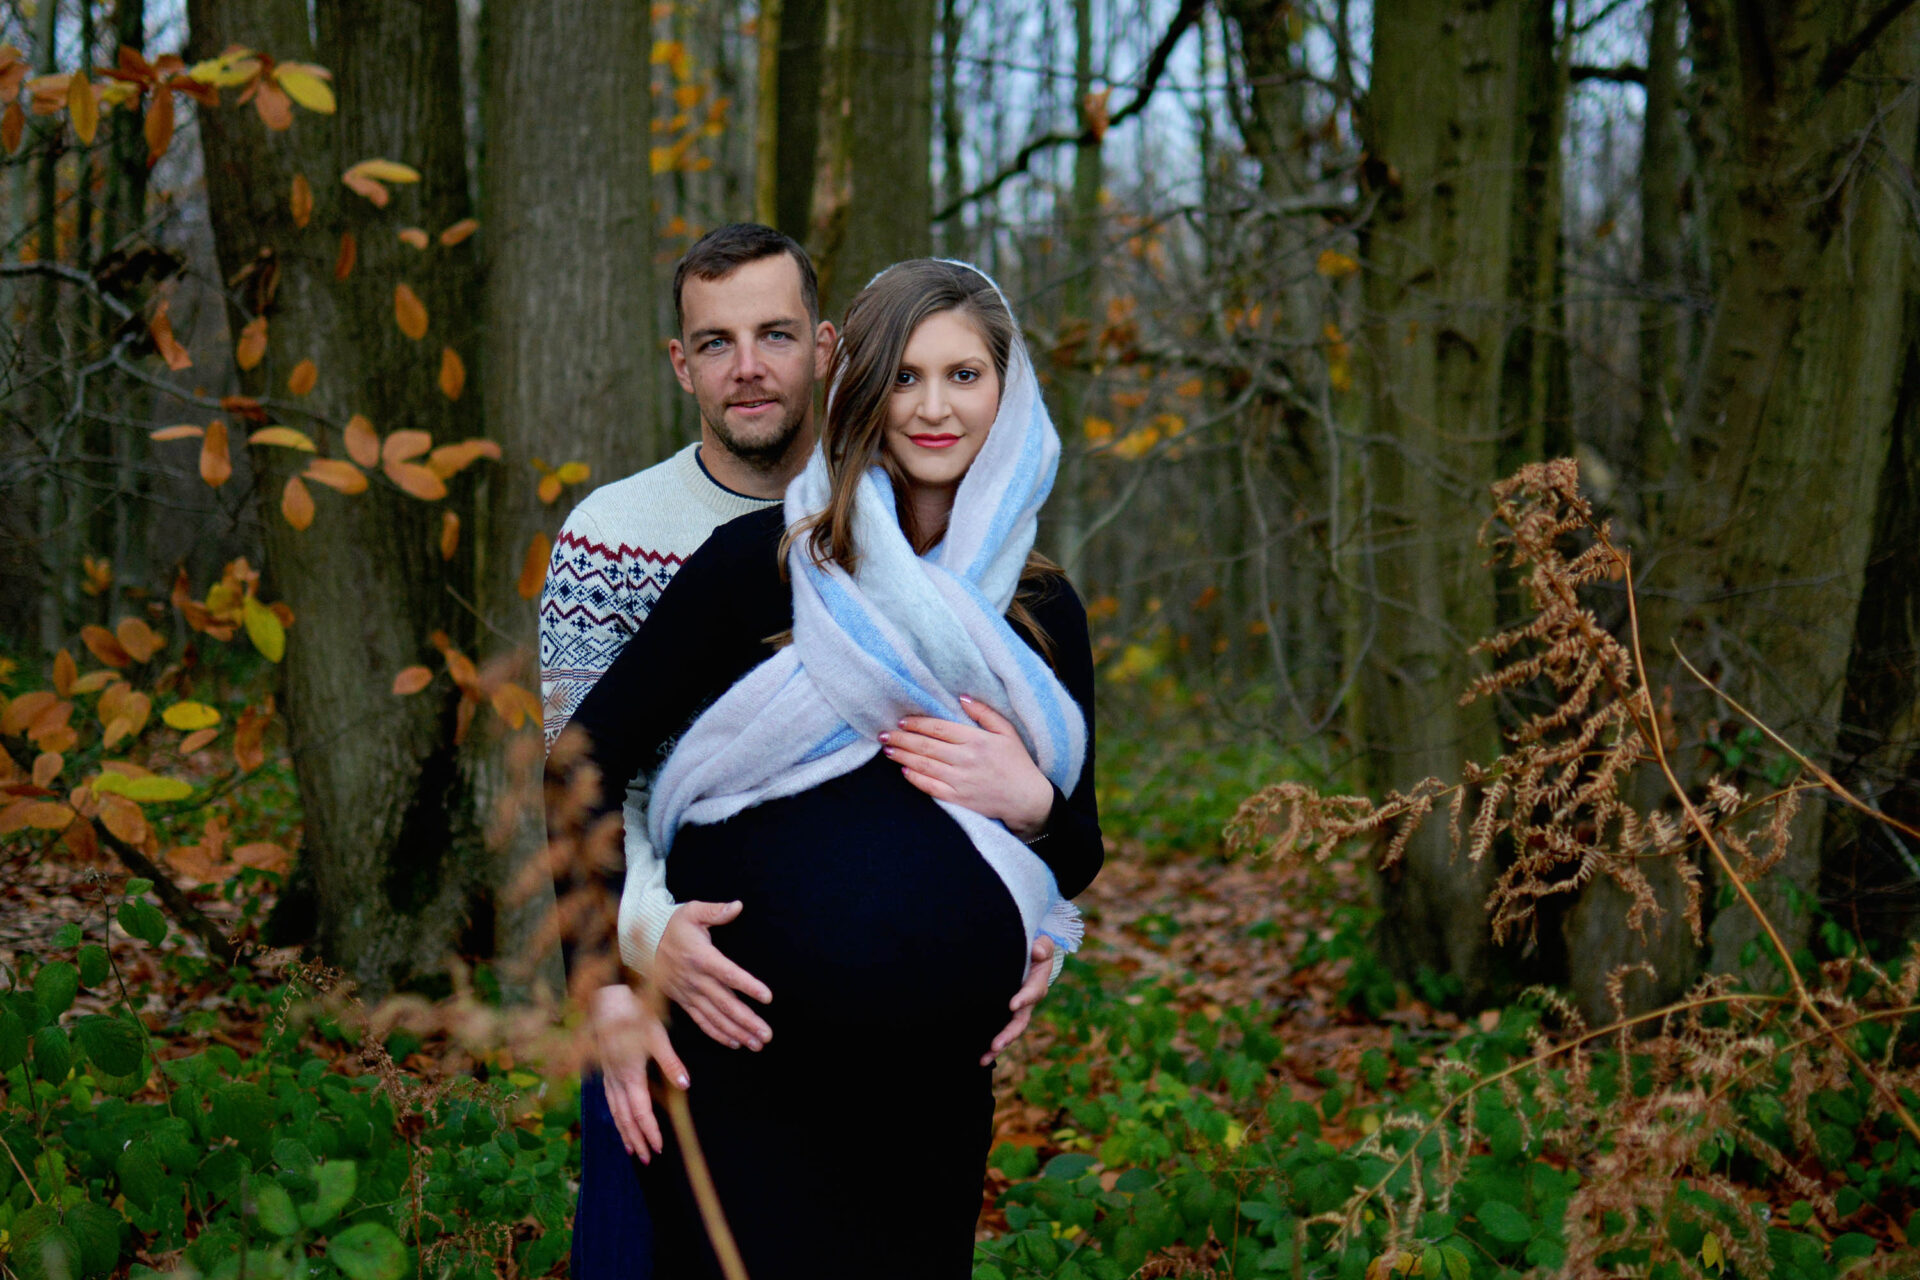 maternity photography in kings hill kent